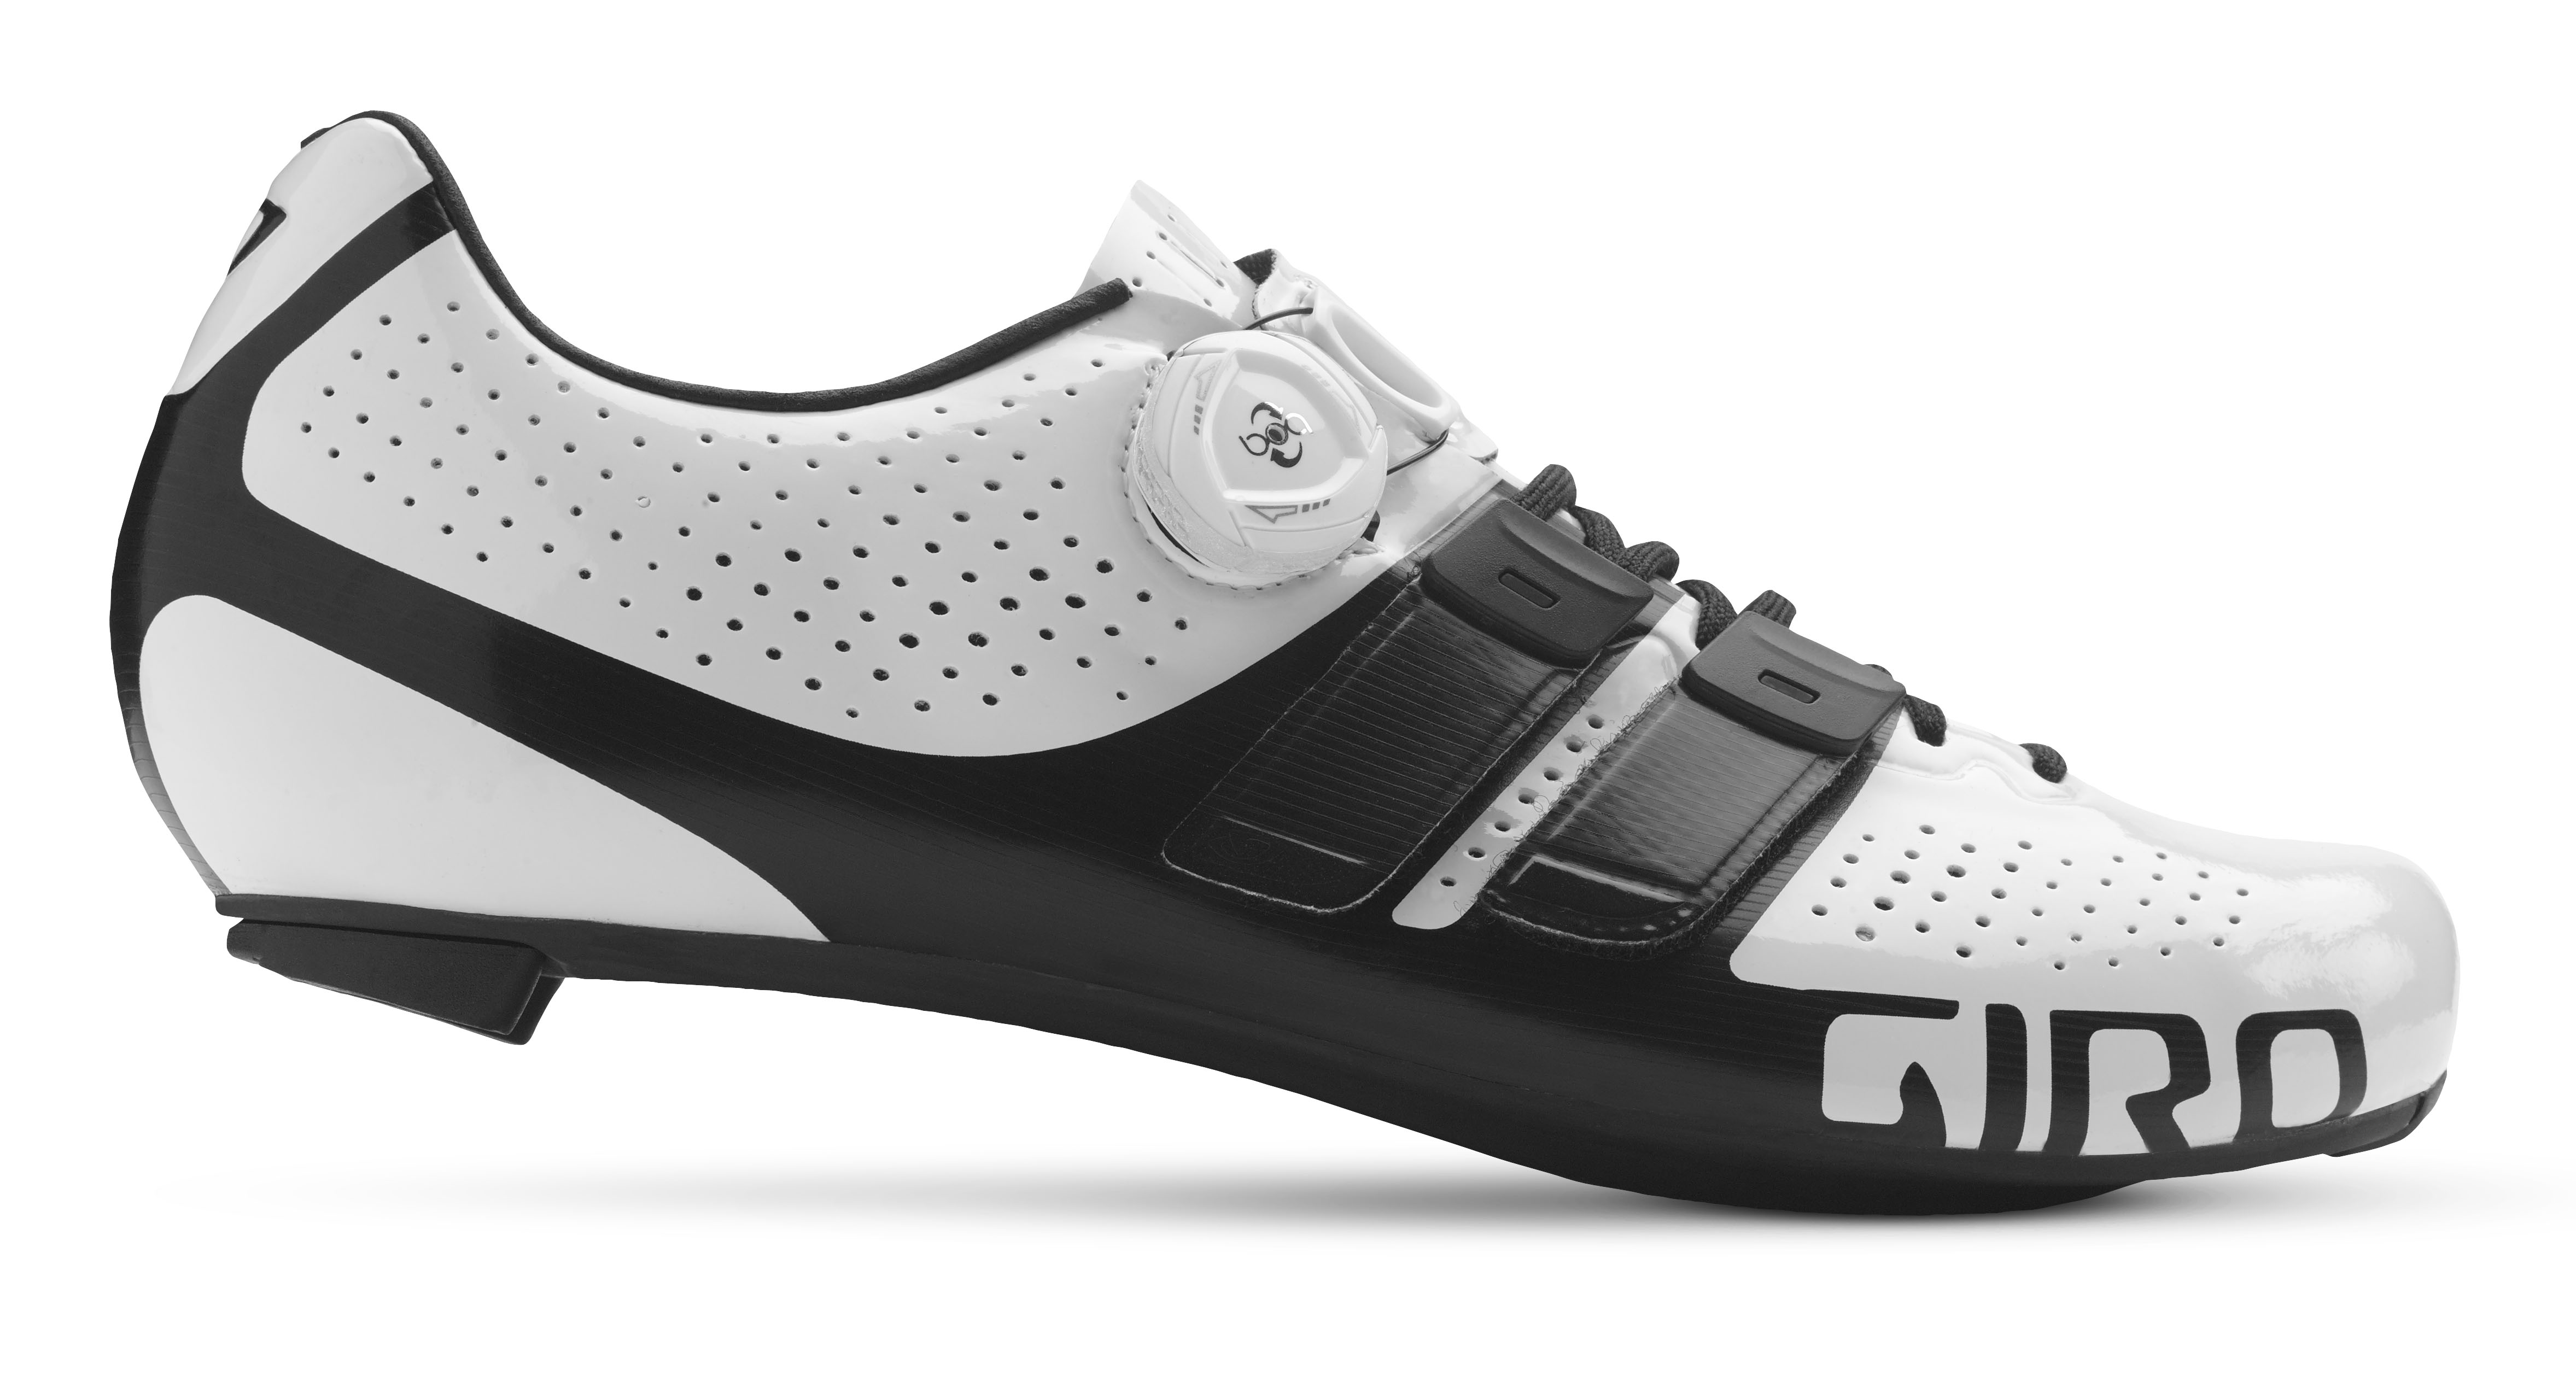 Giro cykelsko Factor Techlace Hv/So 41 Hvid/Sort HVID 41 | Shoes and overlays